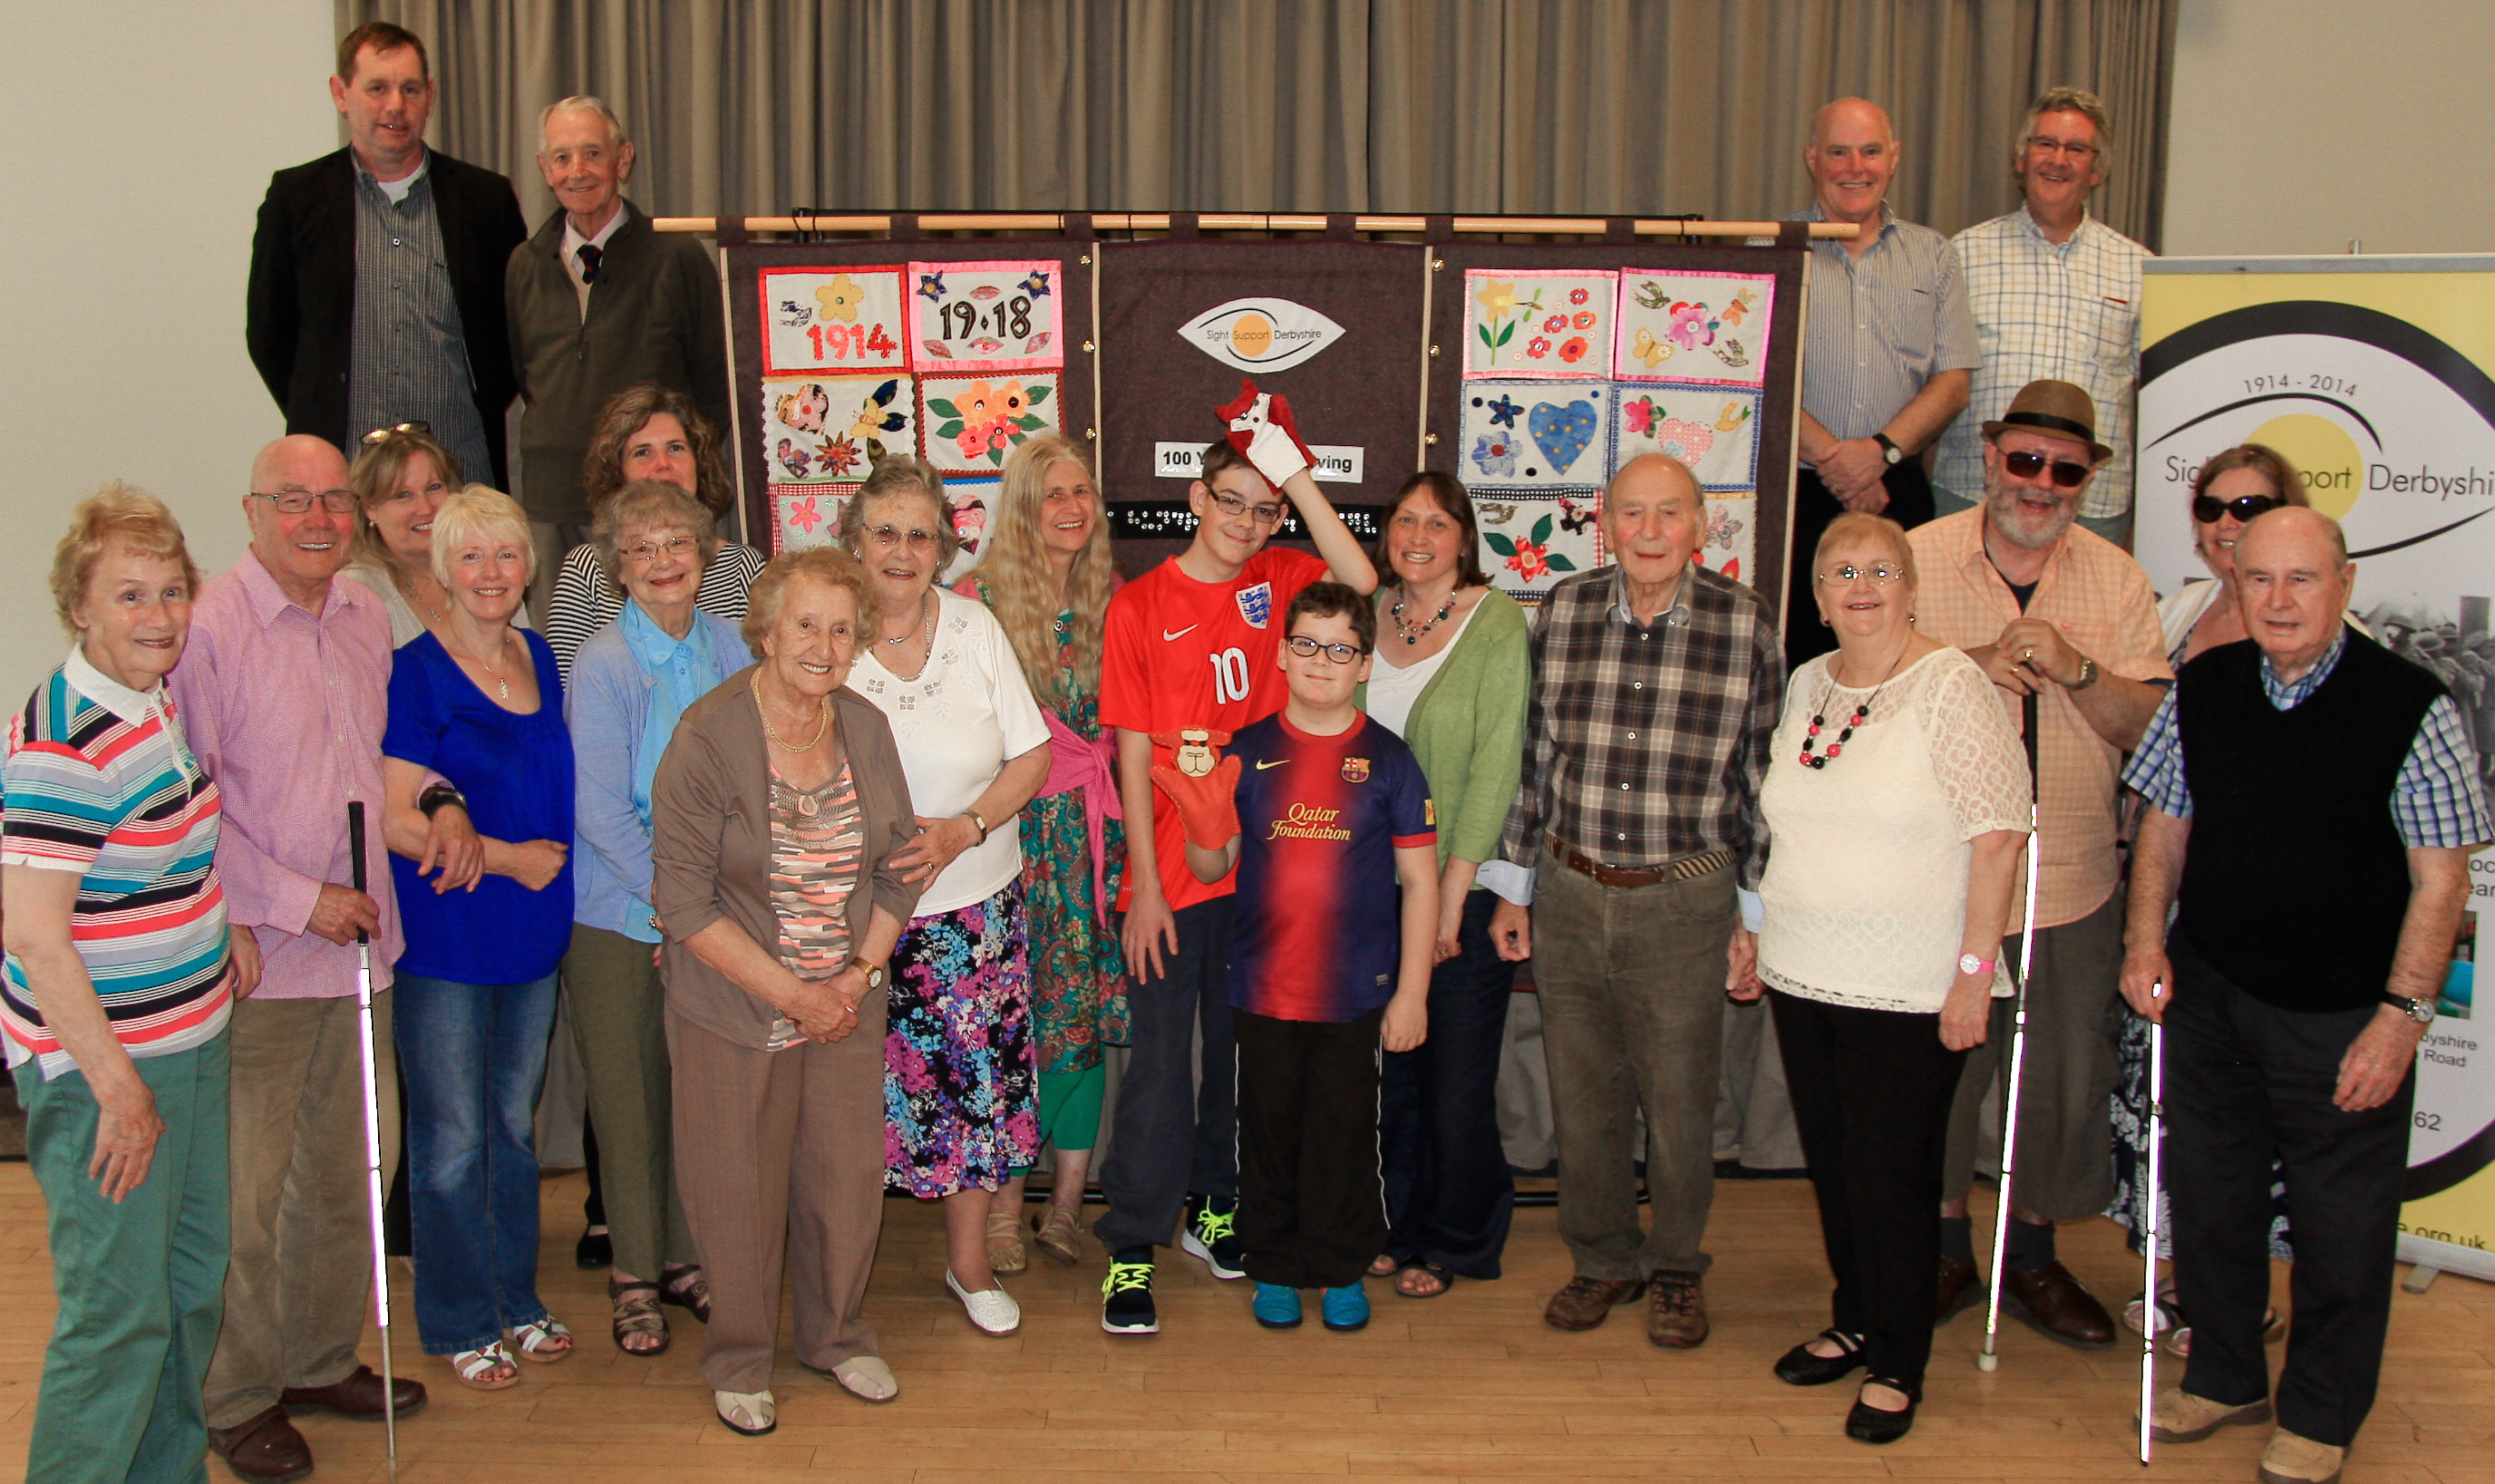 Image showing visually impaired members taking part in the 100 years and still serving project